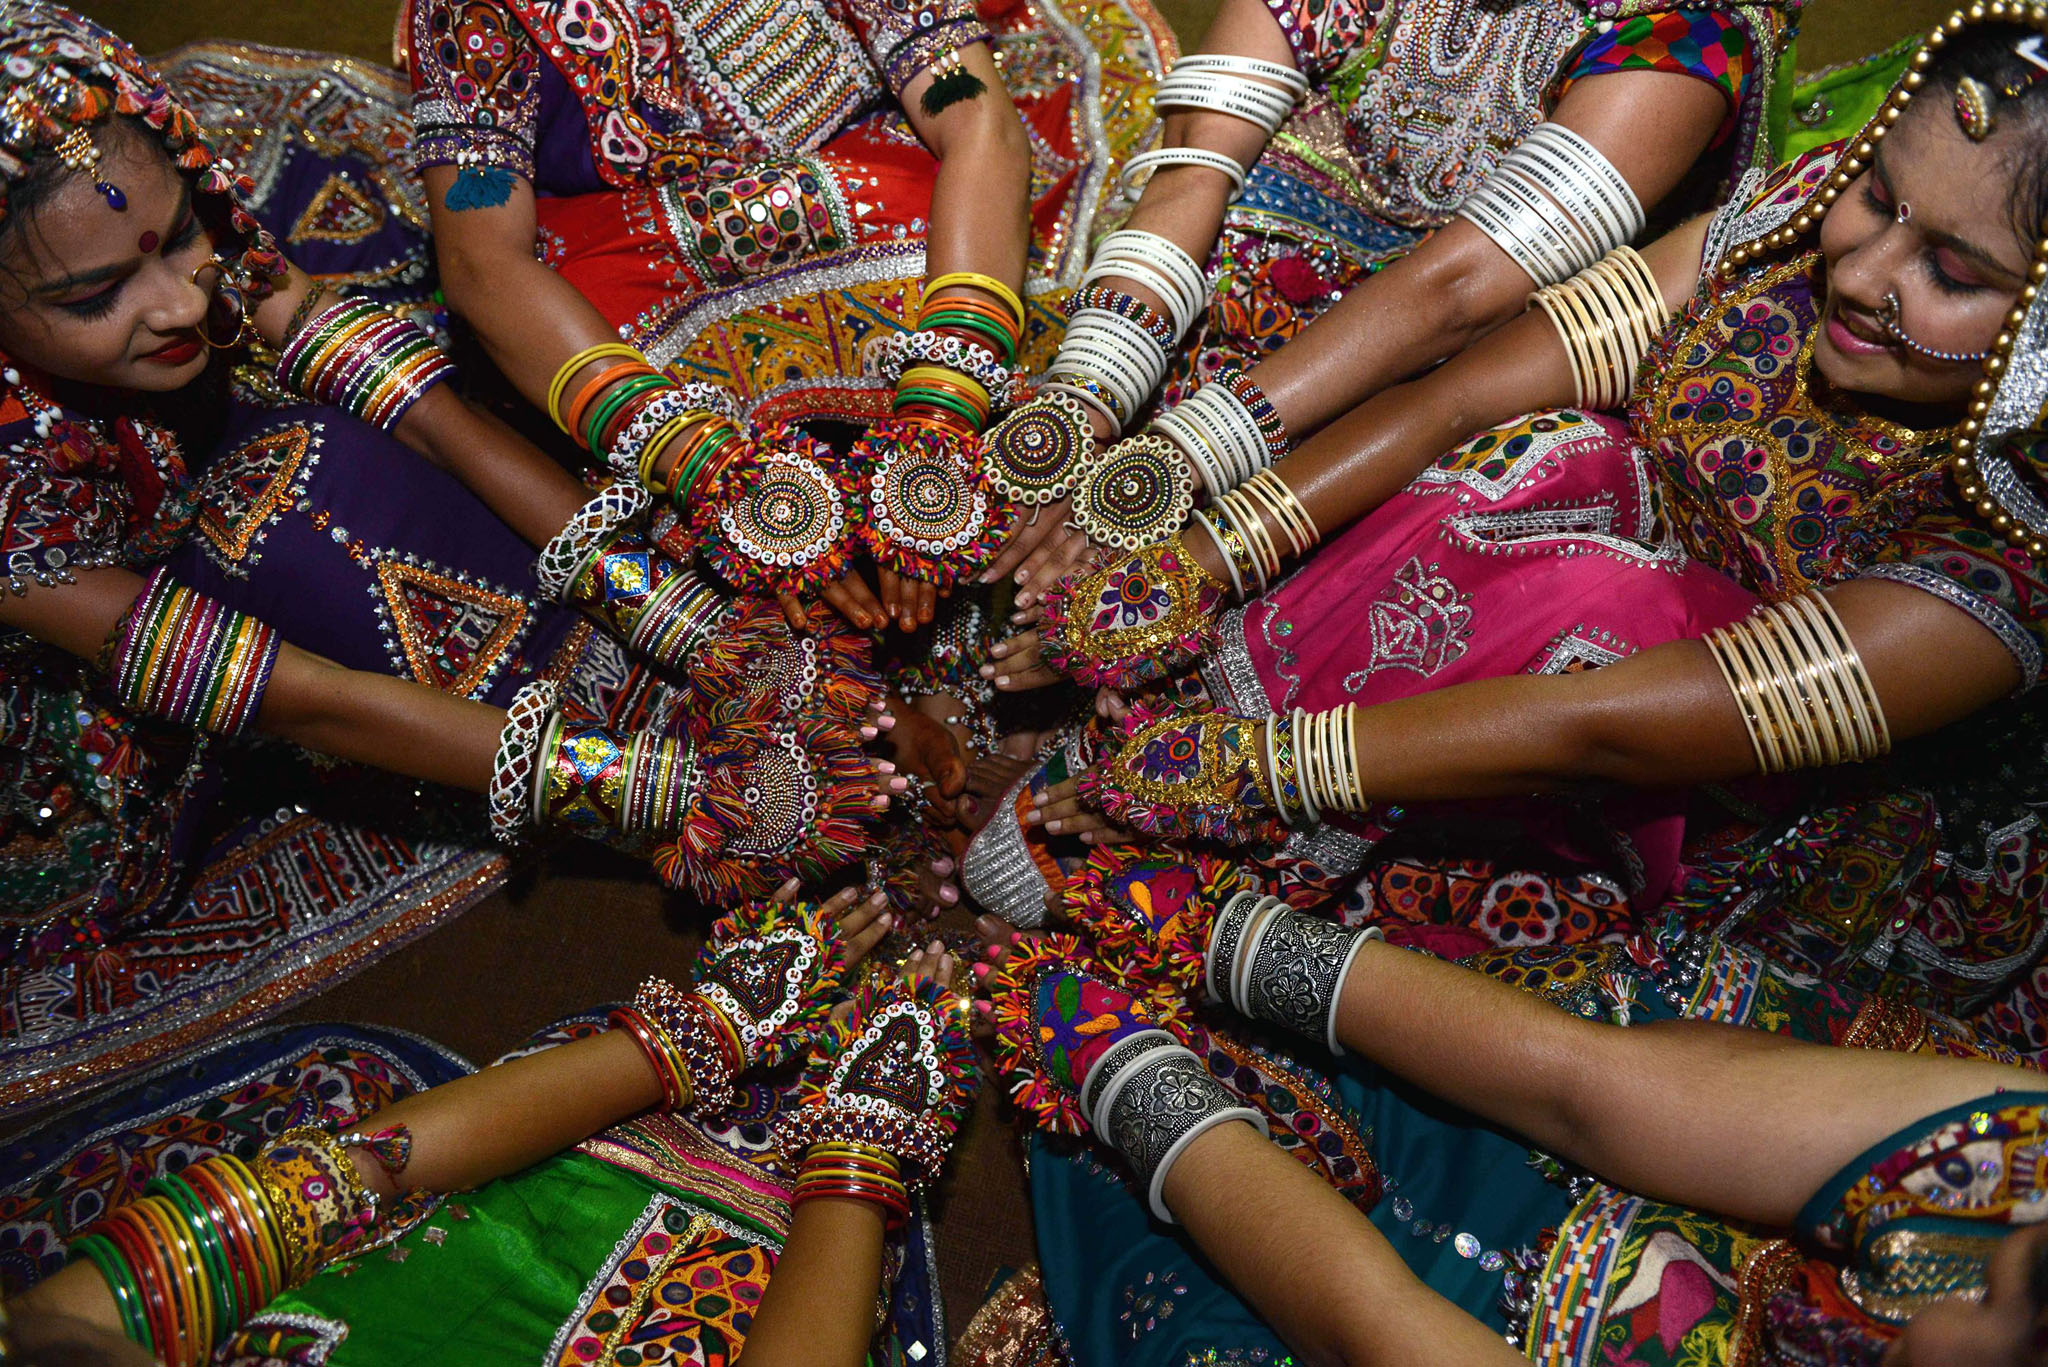 ndian folk dancers display ornaments during a break while participating in the first night of Navratri